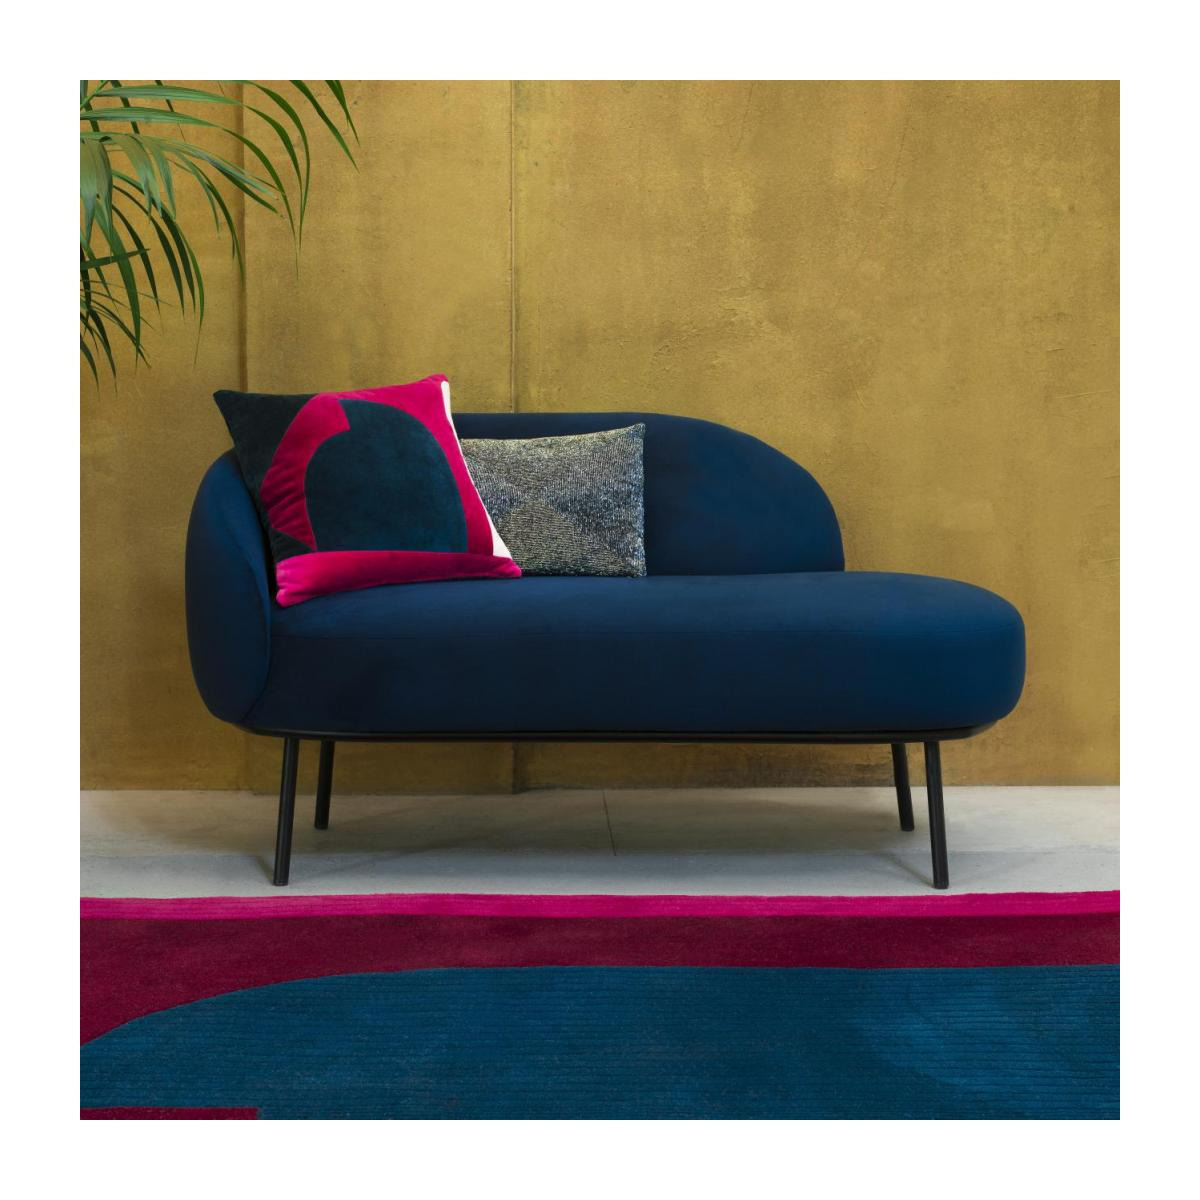 Chaiselongue aus Stoff - Blau  n°2